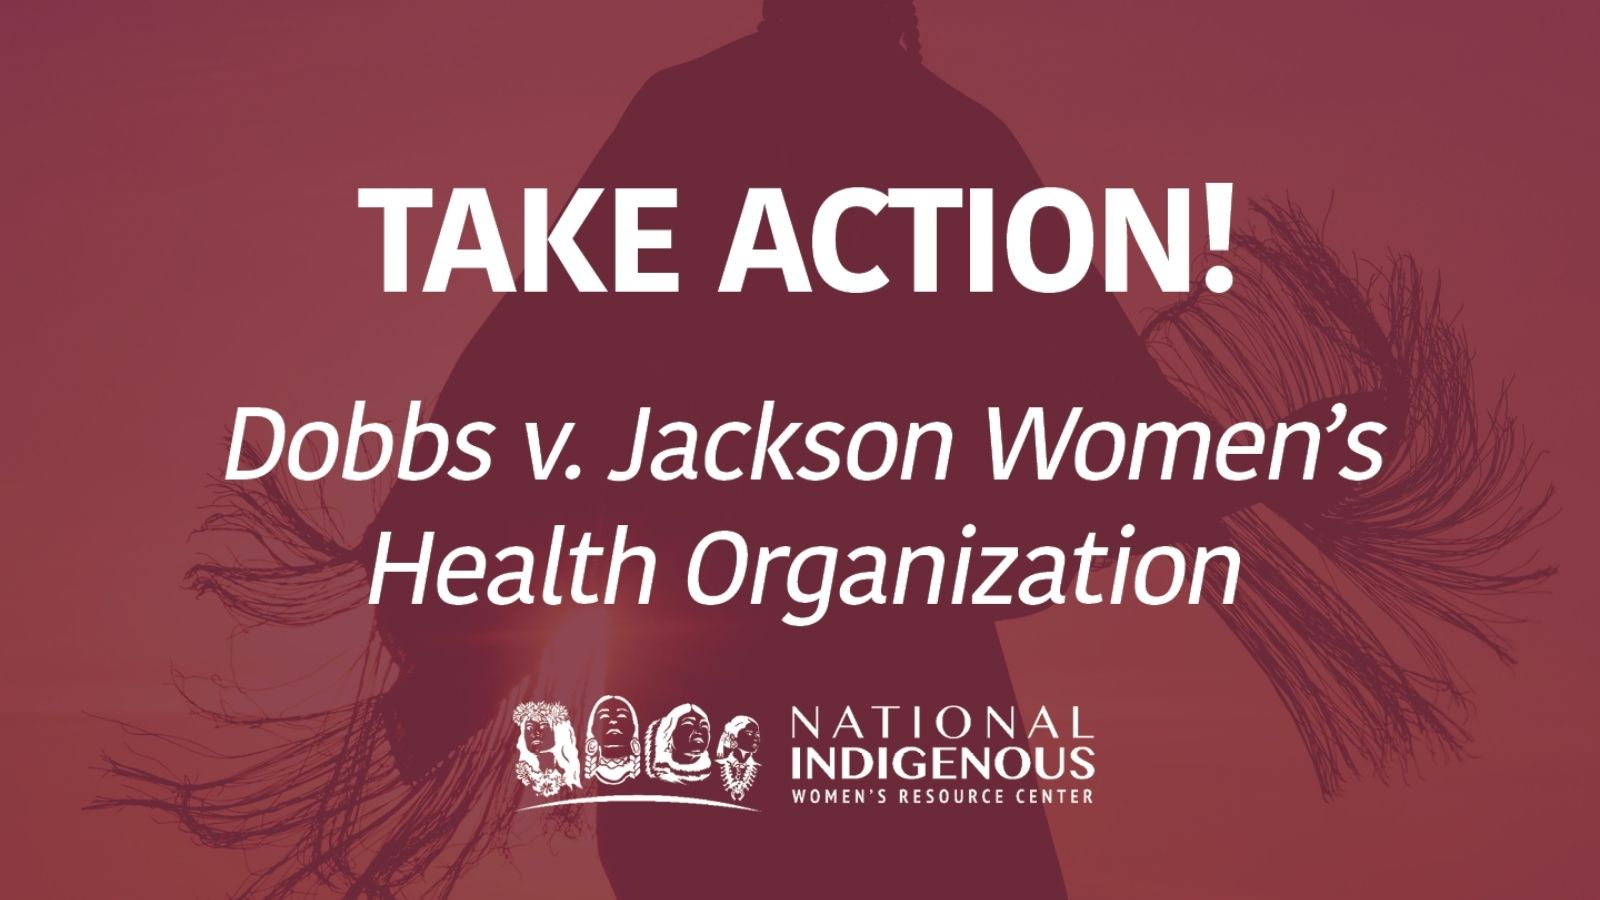 Native woman in regalia in background with red color overlay, with text 'Take Action! Dobbs v. Jackson Women's Health Organization' and with white NIWRC logo at bottom.